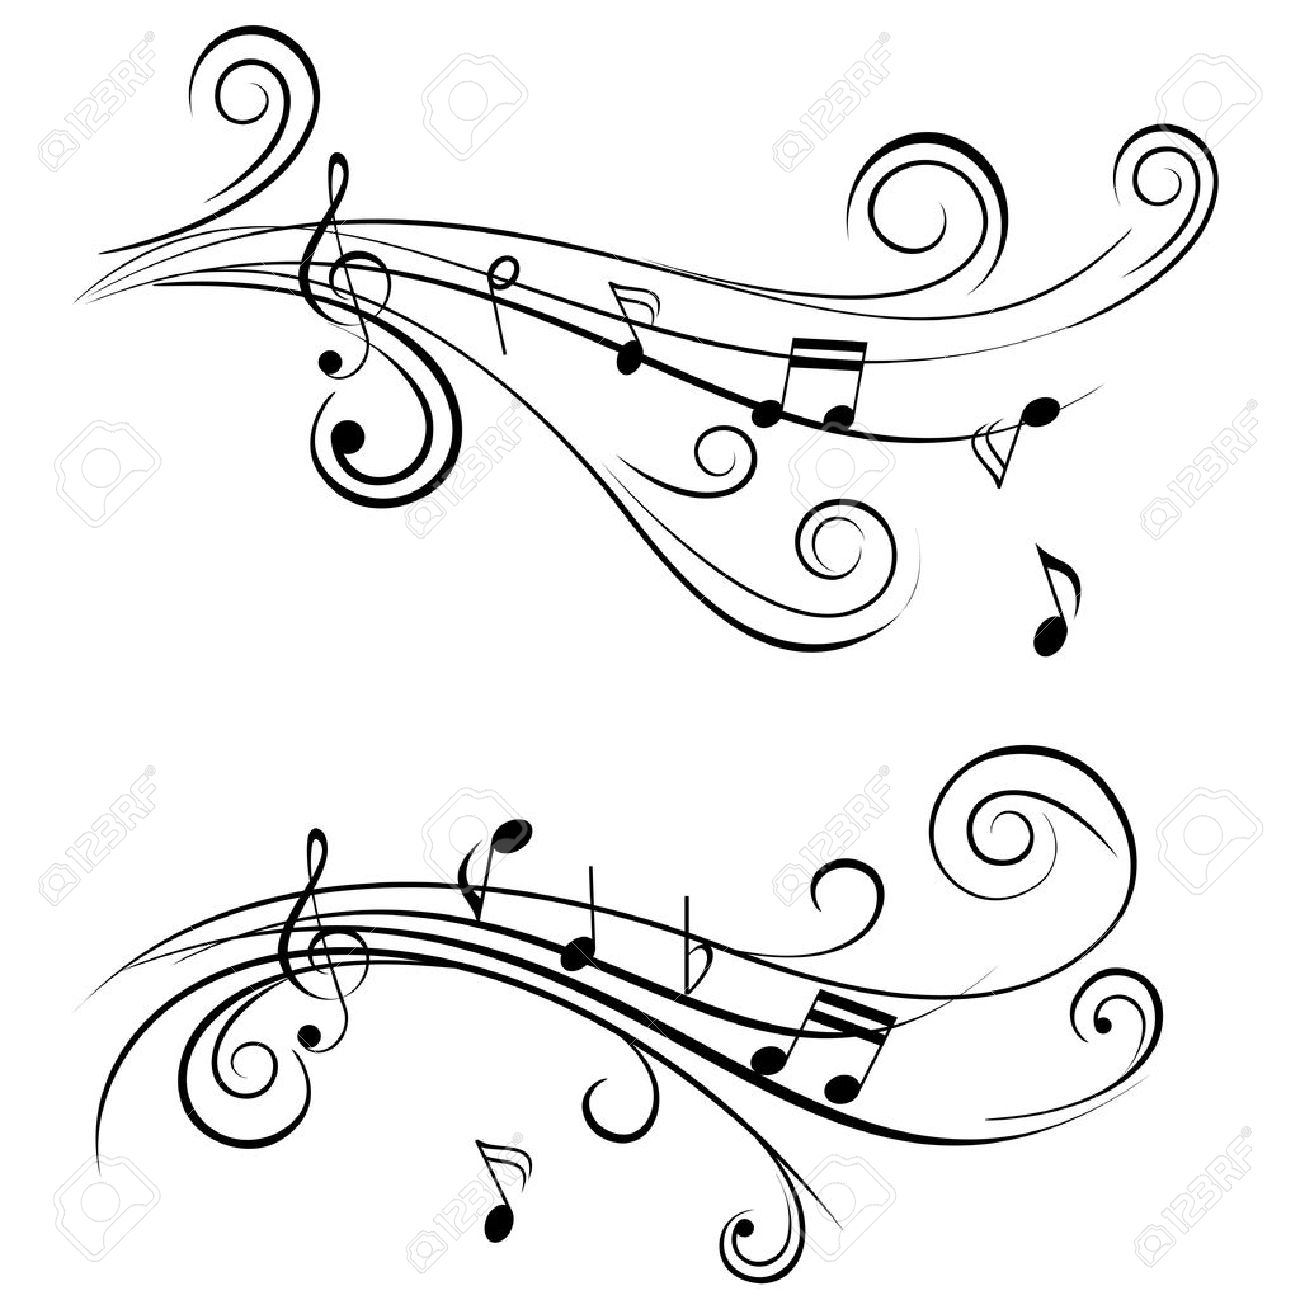 Black And White Music Notes Background Ornamental music notes with